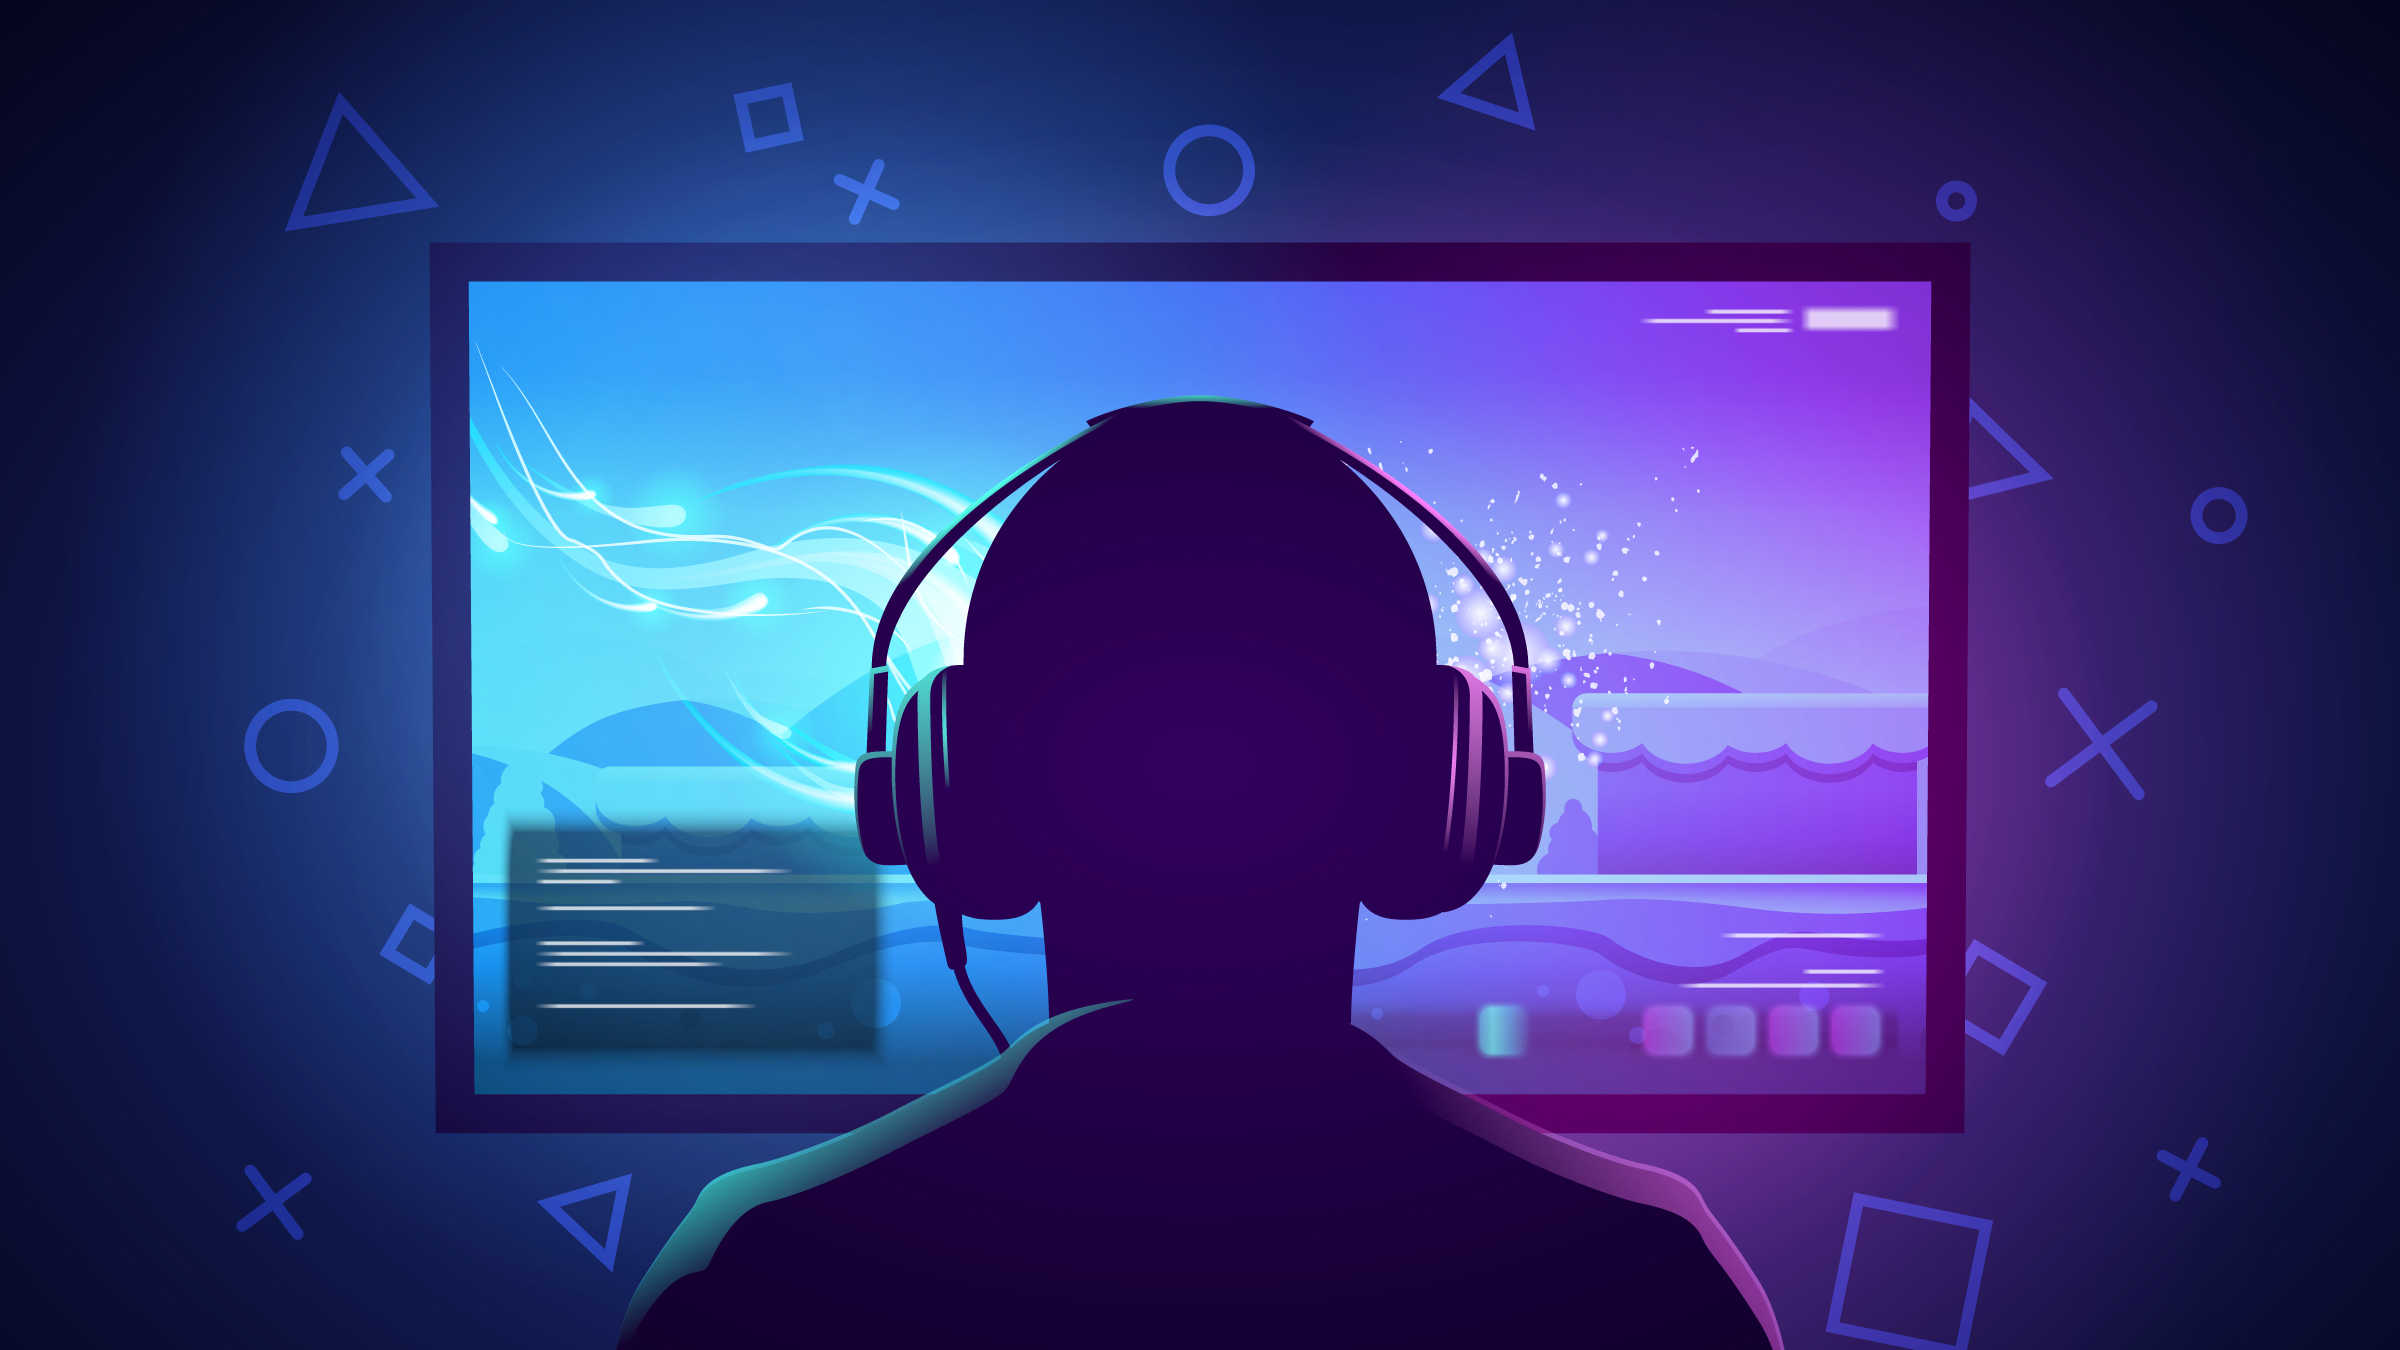 The attractions of digital gaming-based treatment are many.